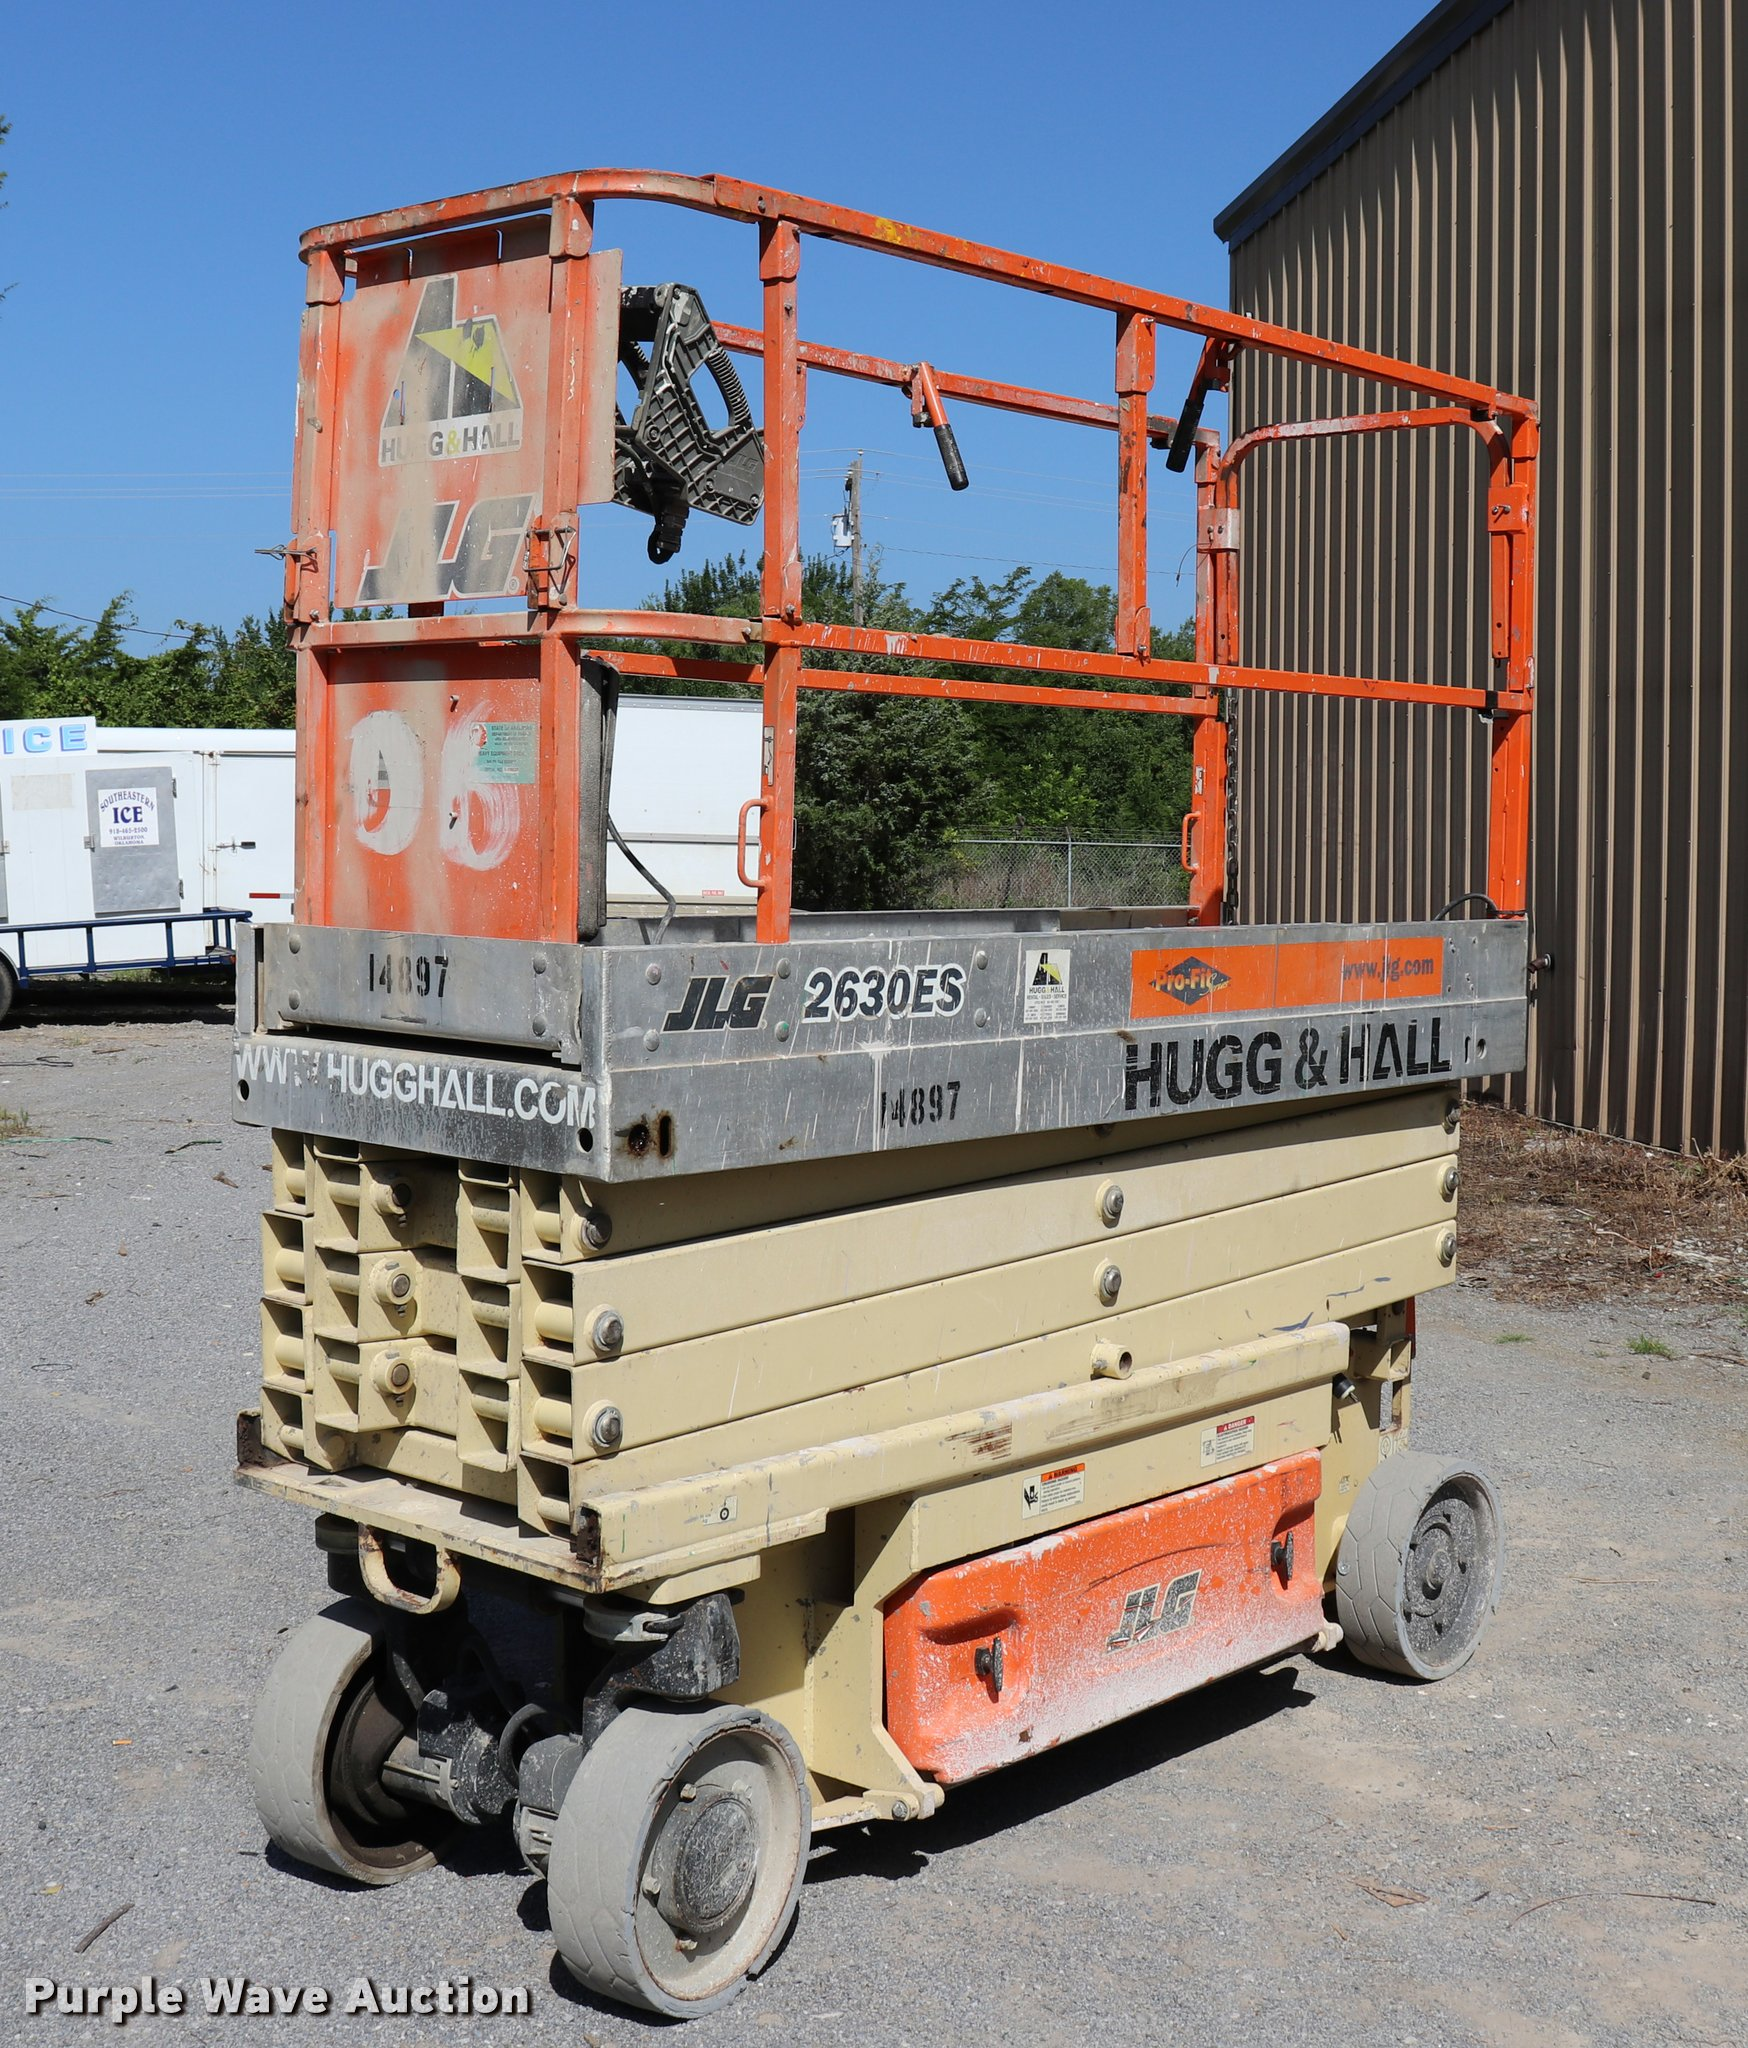 hight resolution of 2006 jlg 2630es scissor lift for sale in oklahoma